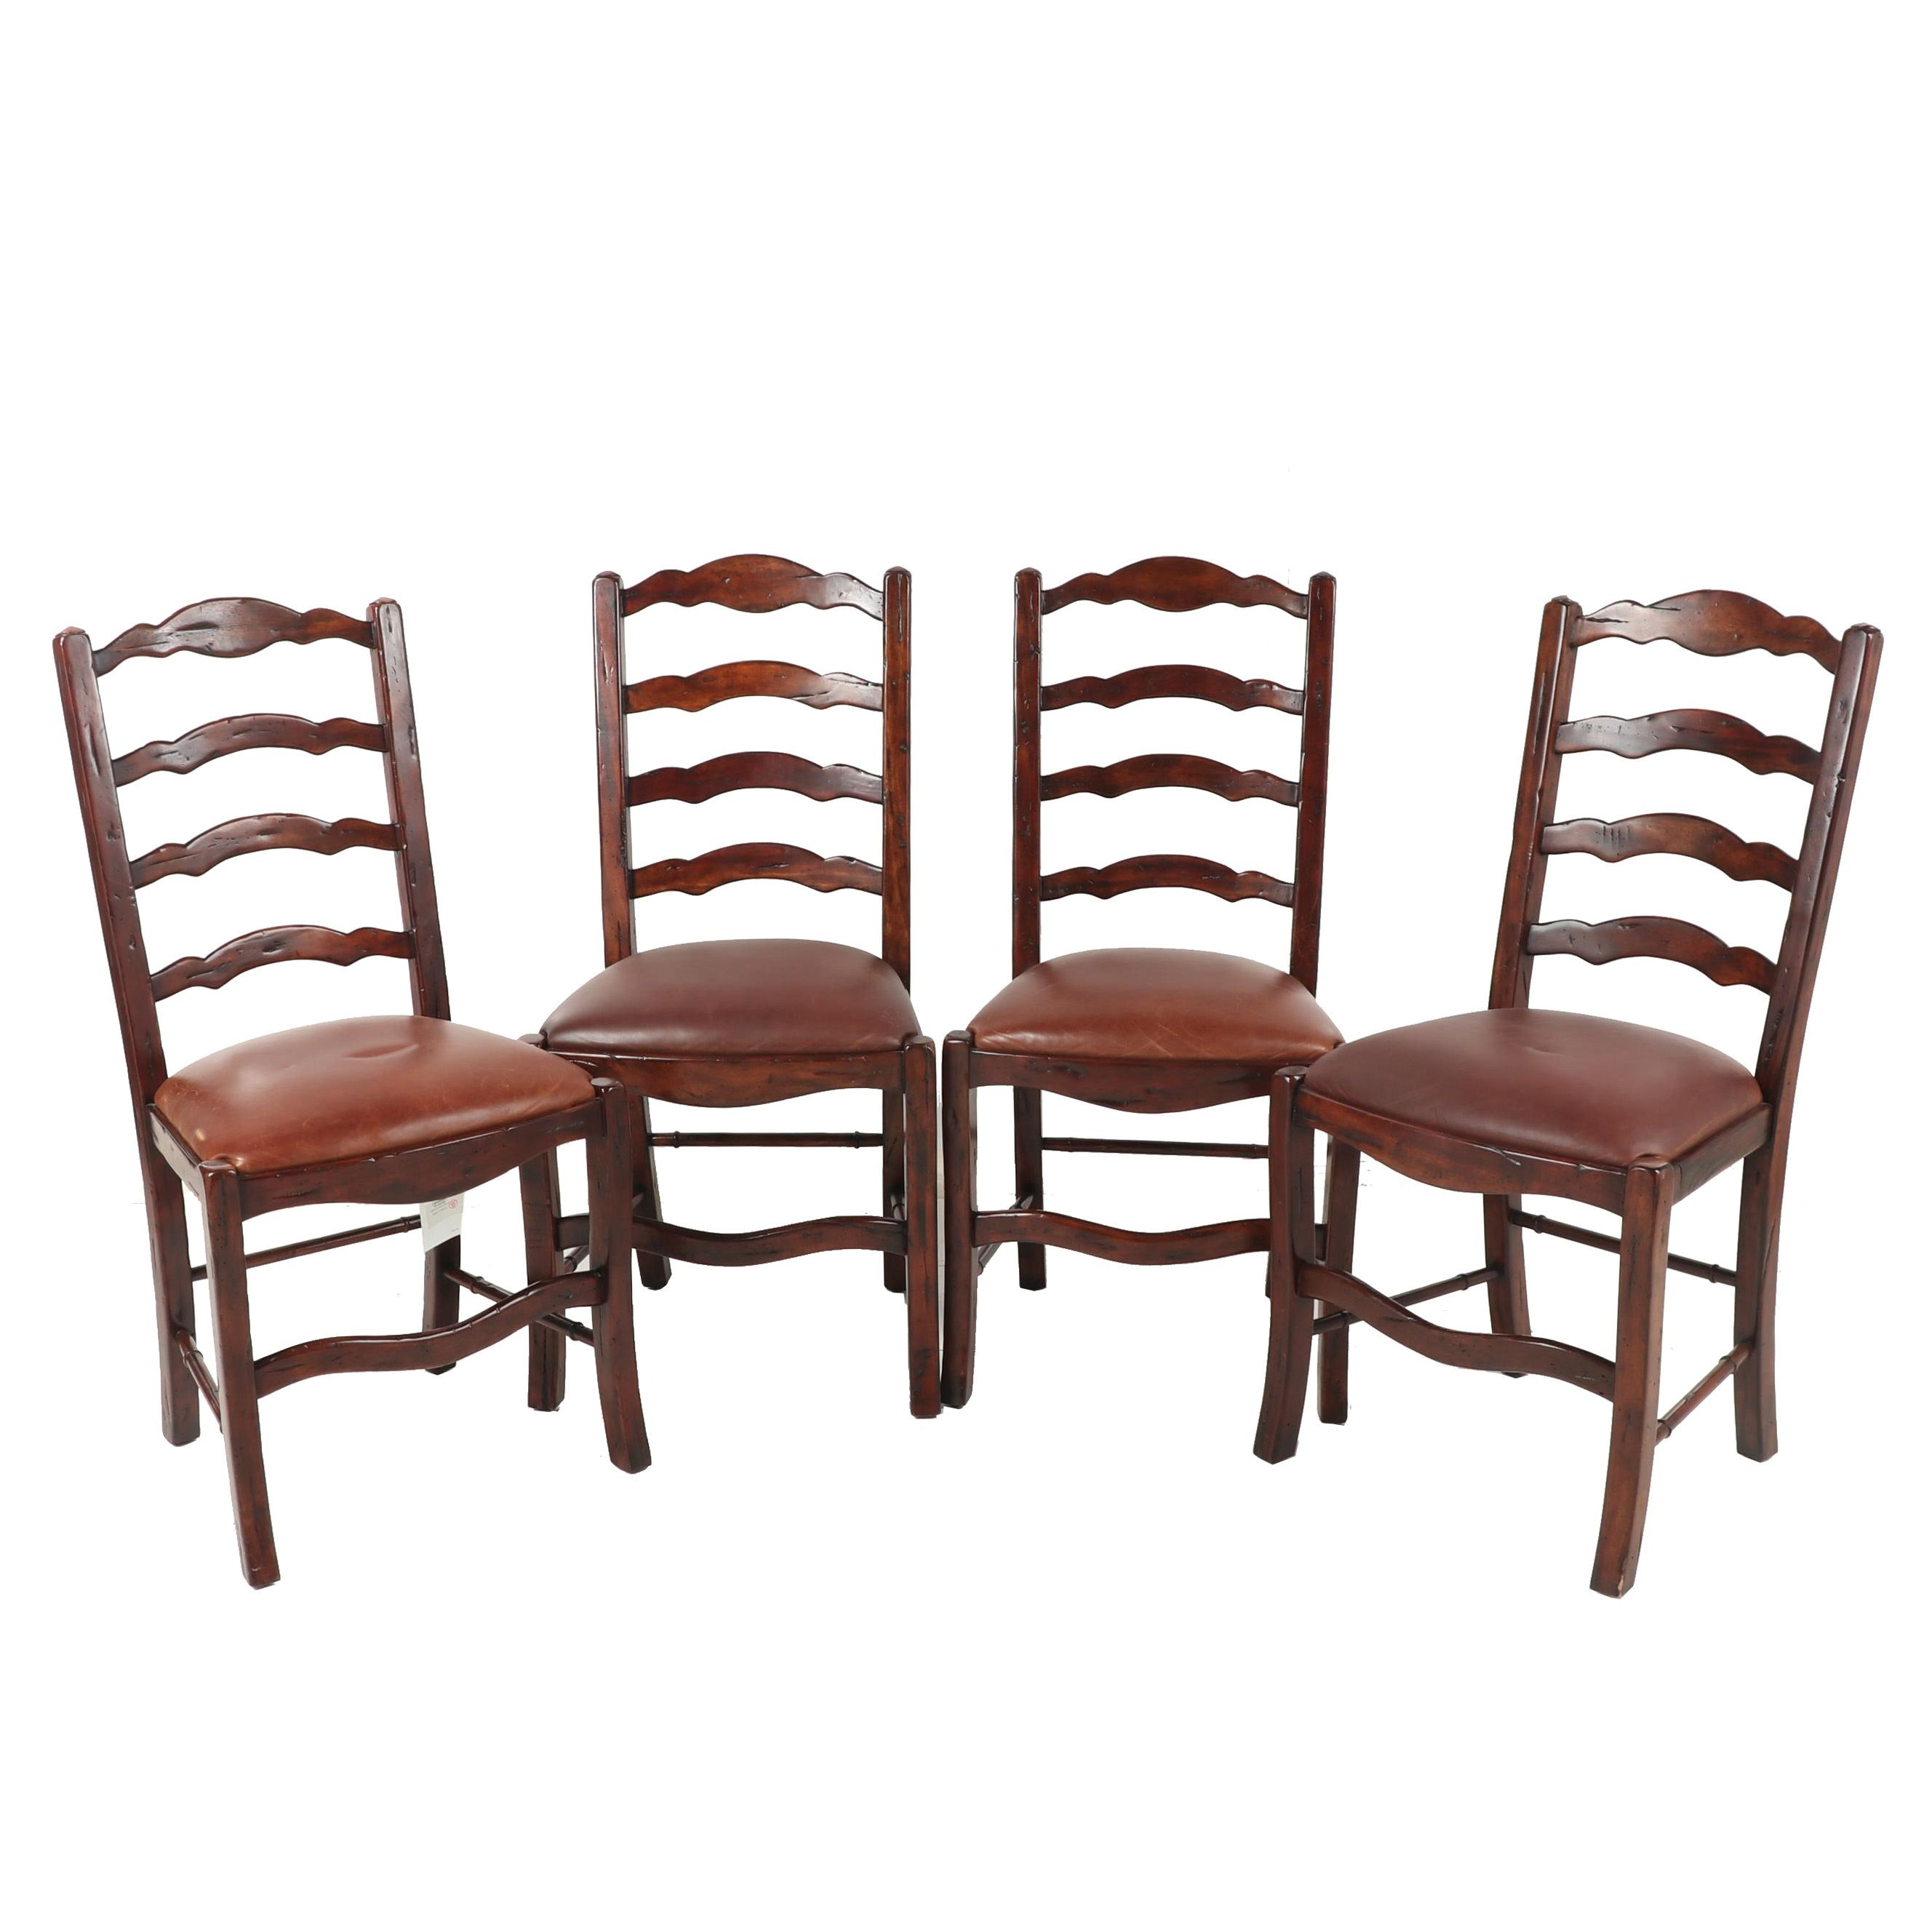 Four Matching Wooden Dining Chairs with Leather Seats